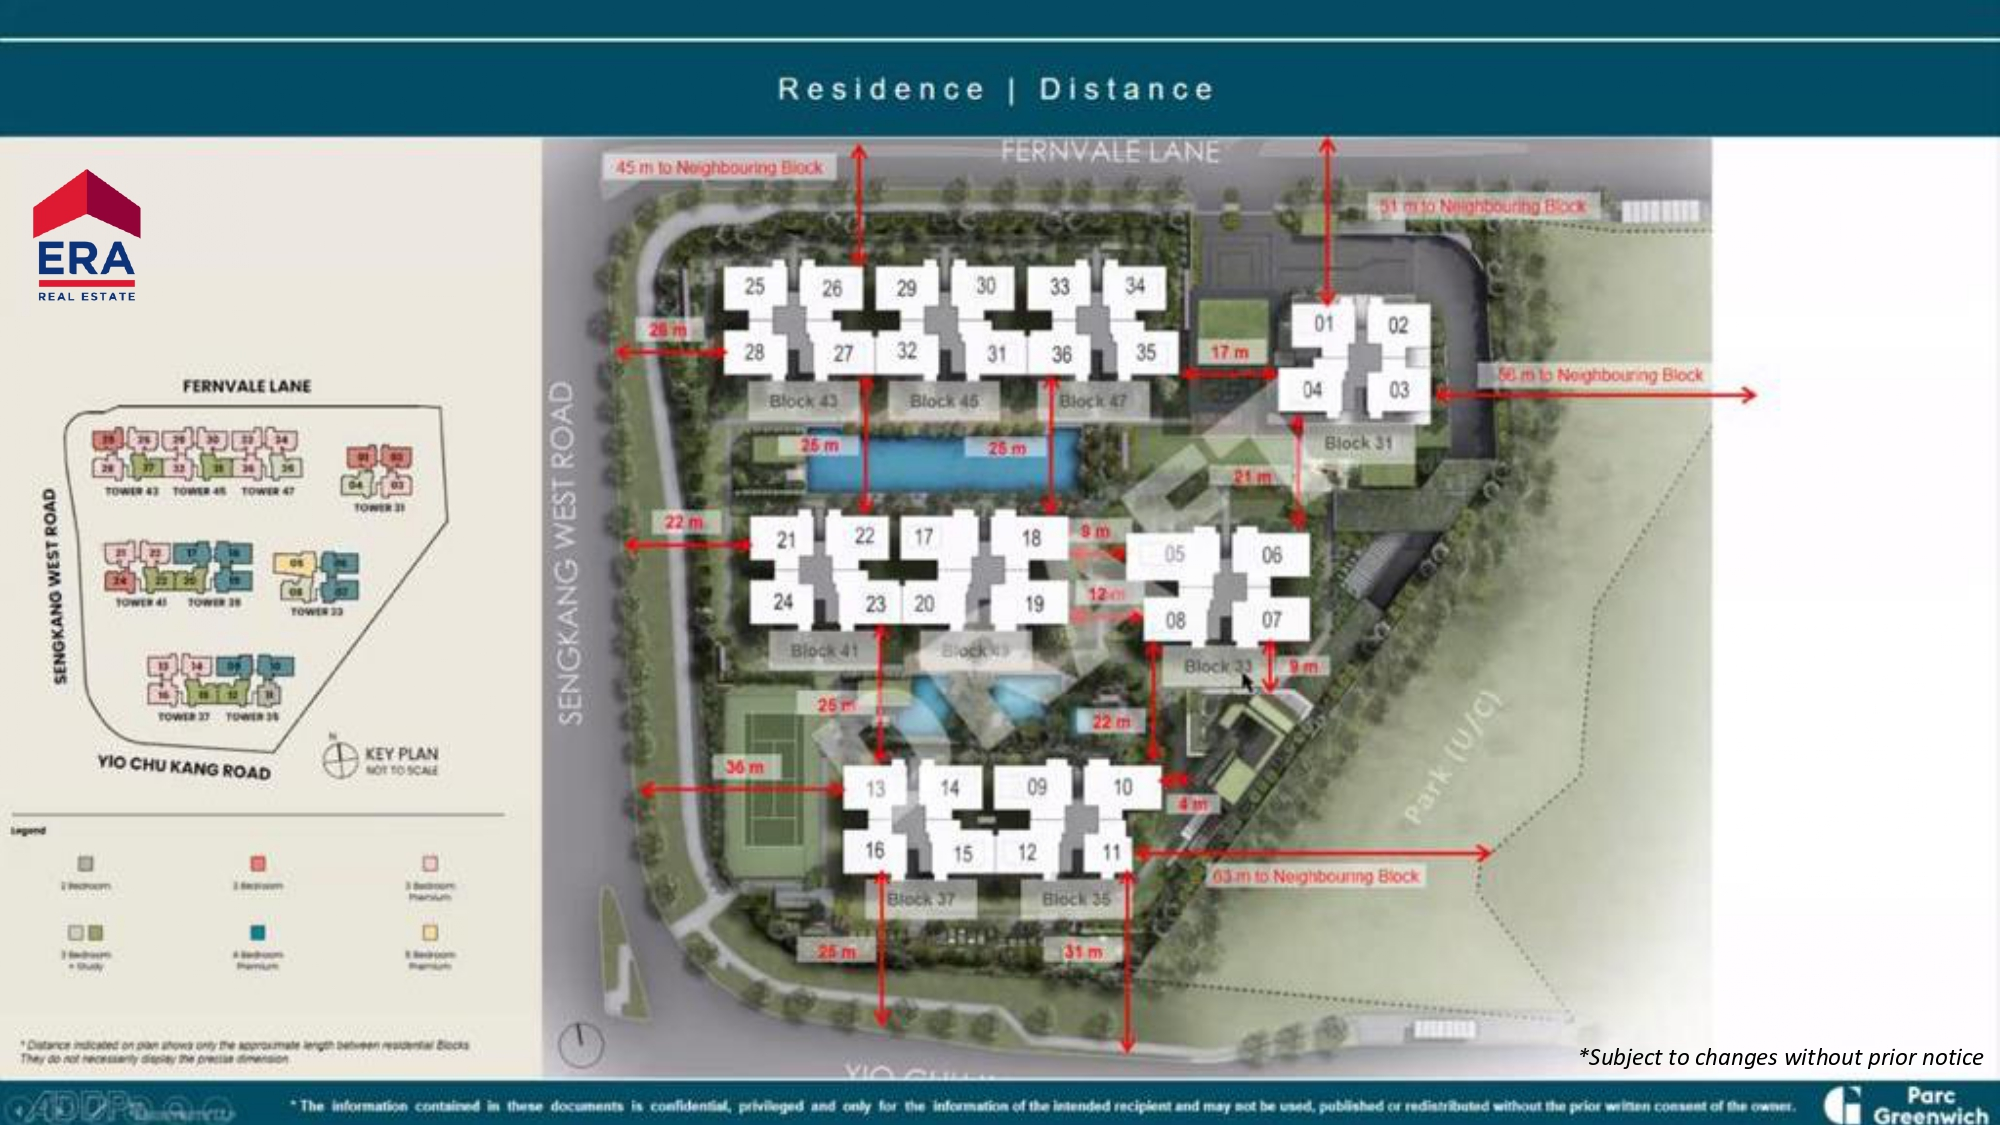 Parc Greenwich Residence Distance